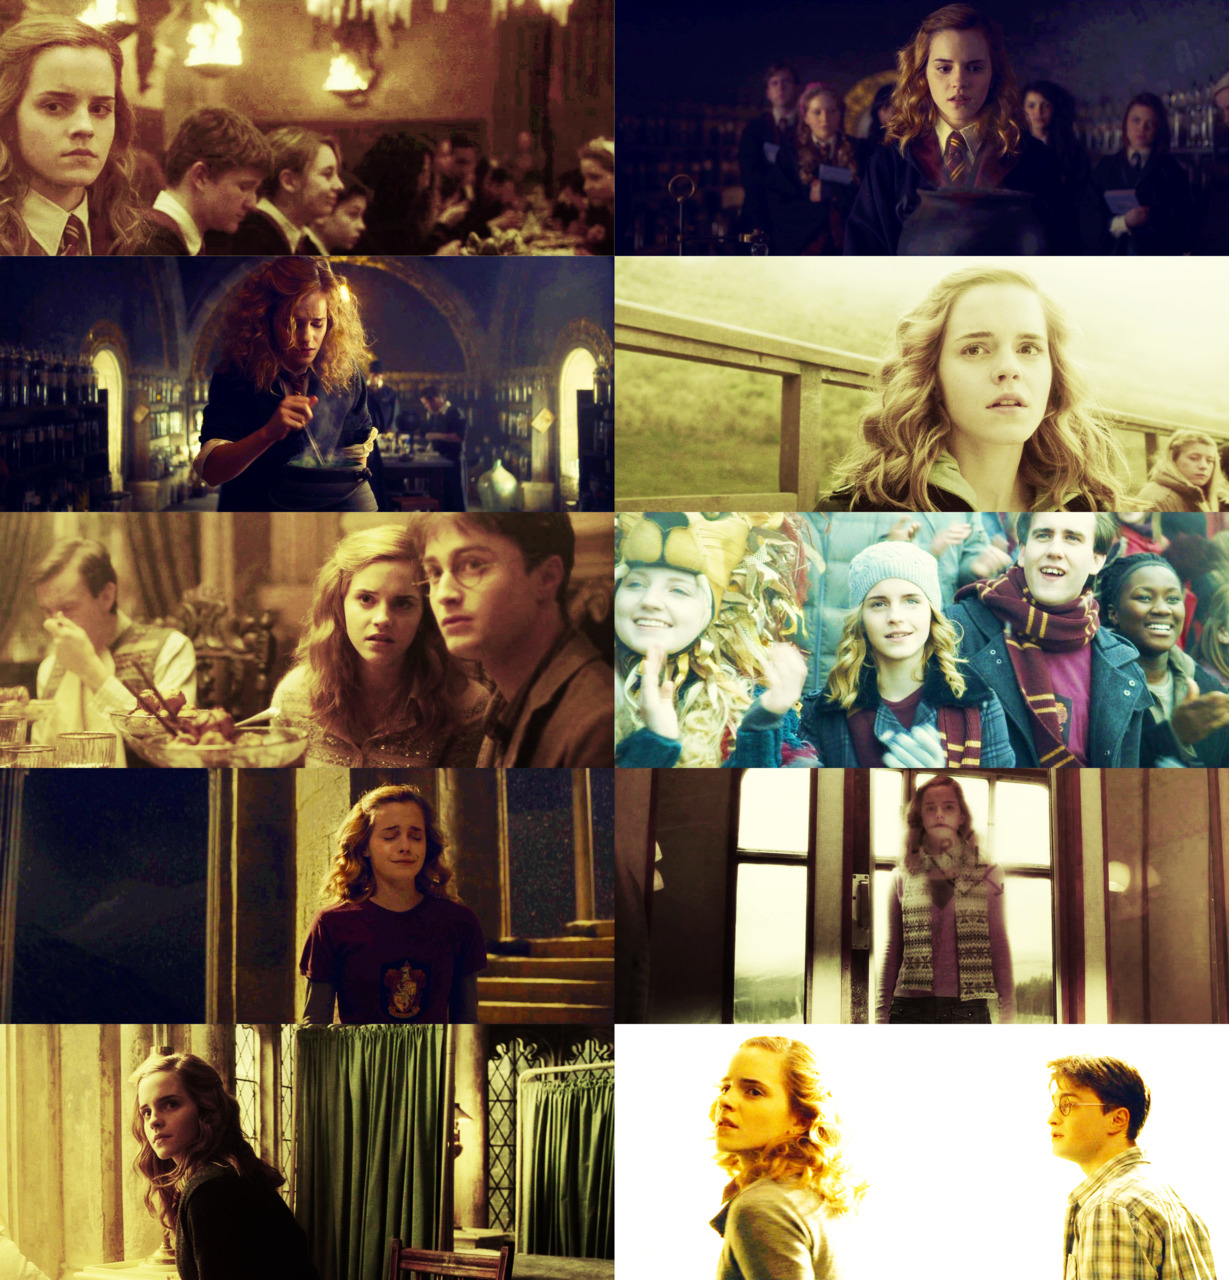 cloakwandstone: 10 Favourite Screencaps of Hermione Granger - Harry Potter and the Half-Blood Prince